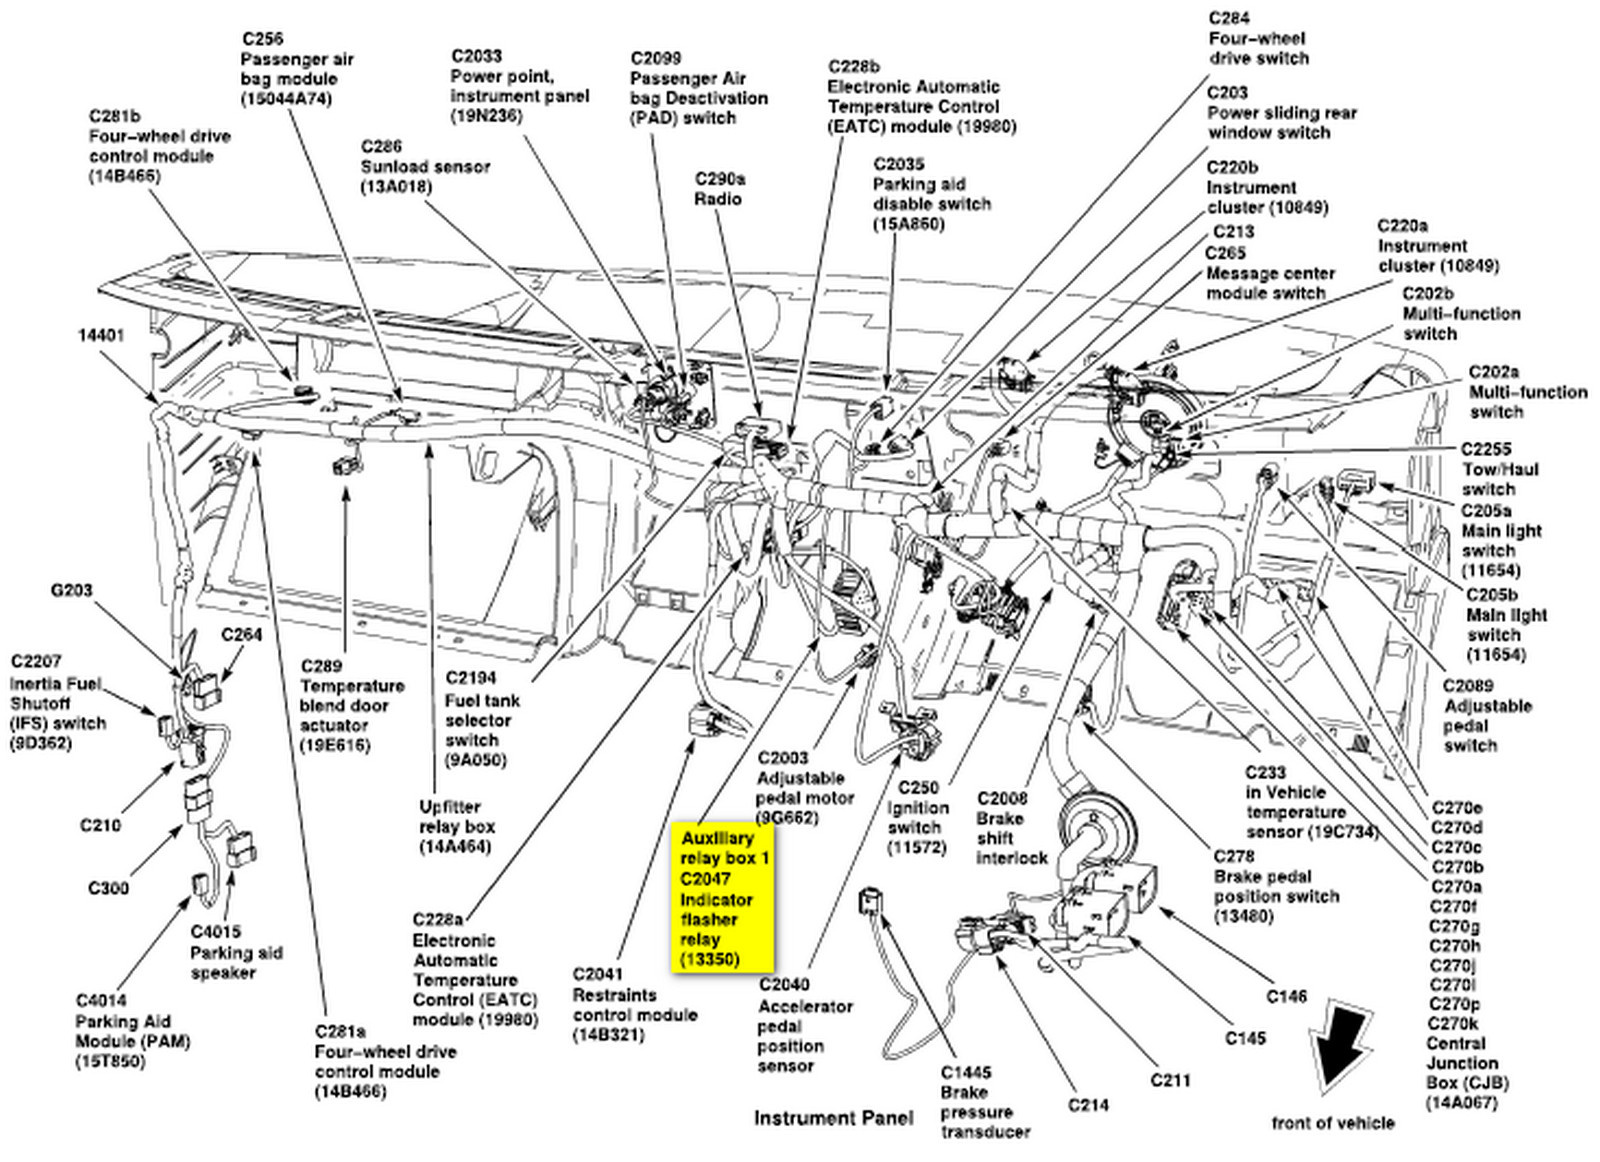 7oo2i Toyota Land Cruiser  plete Wiring Diagram also Headlight Relay Circuit Description as well Toyota Camry 1997 2001 How To Reset Check Engine Light 396435 in addition Toyota additionally 7i0j5 Gmc 2500hd Sierra Tccm Module Found 2008. on toyota fuse panel diagram